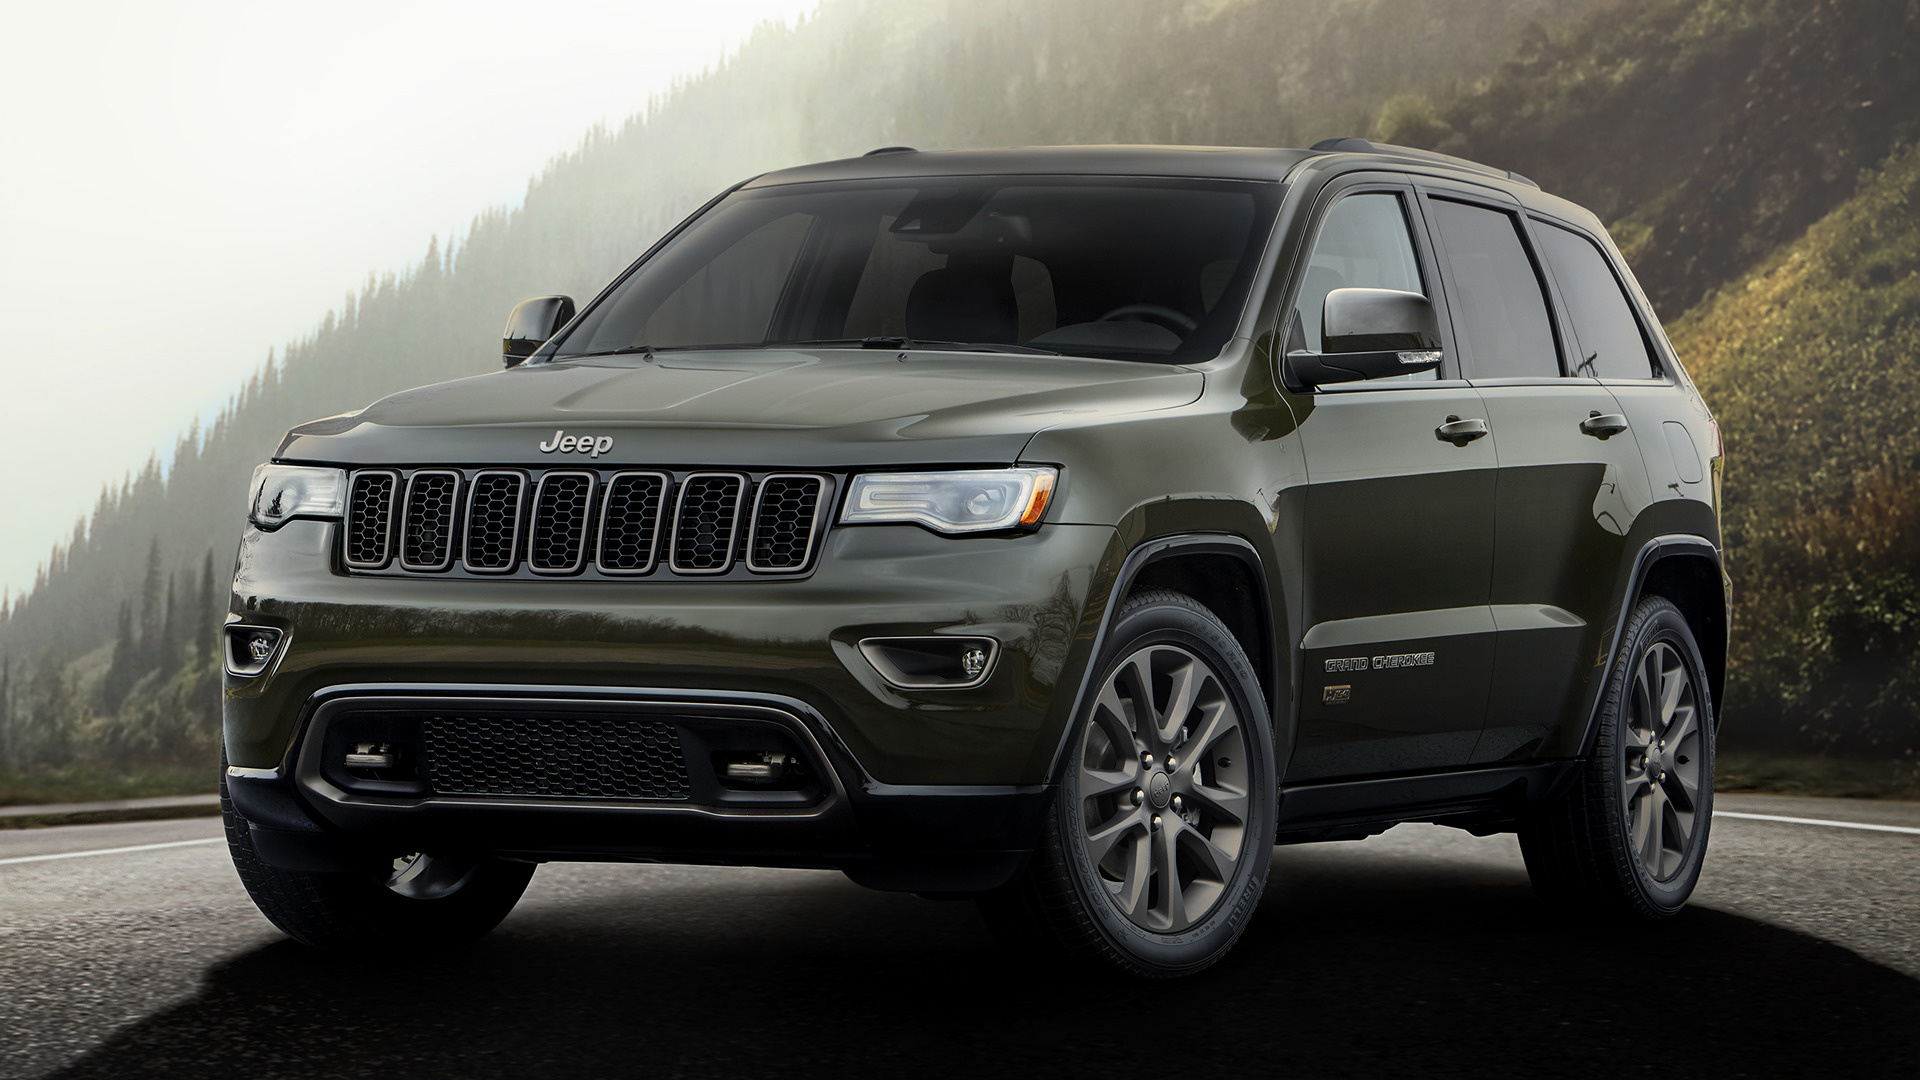 2016 Jeep Grand Cherokee 75th Anniversary   Wallpapers and ...